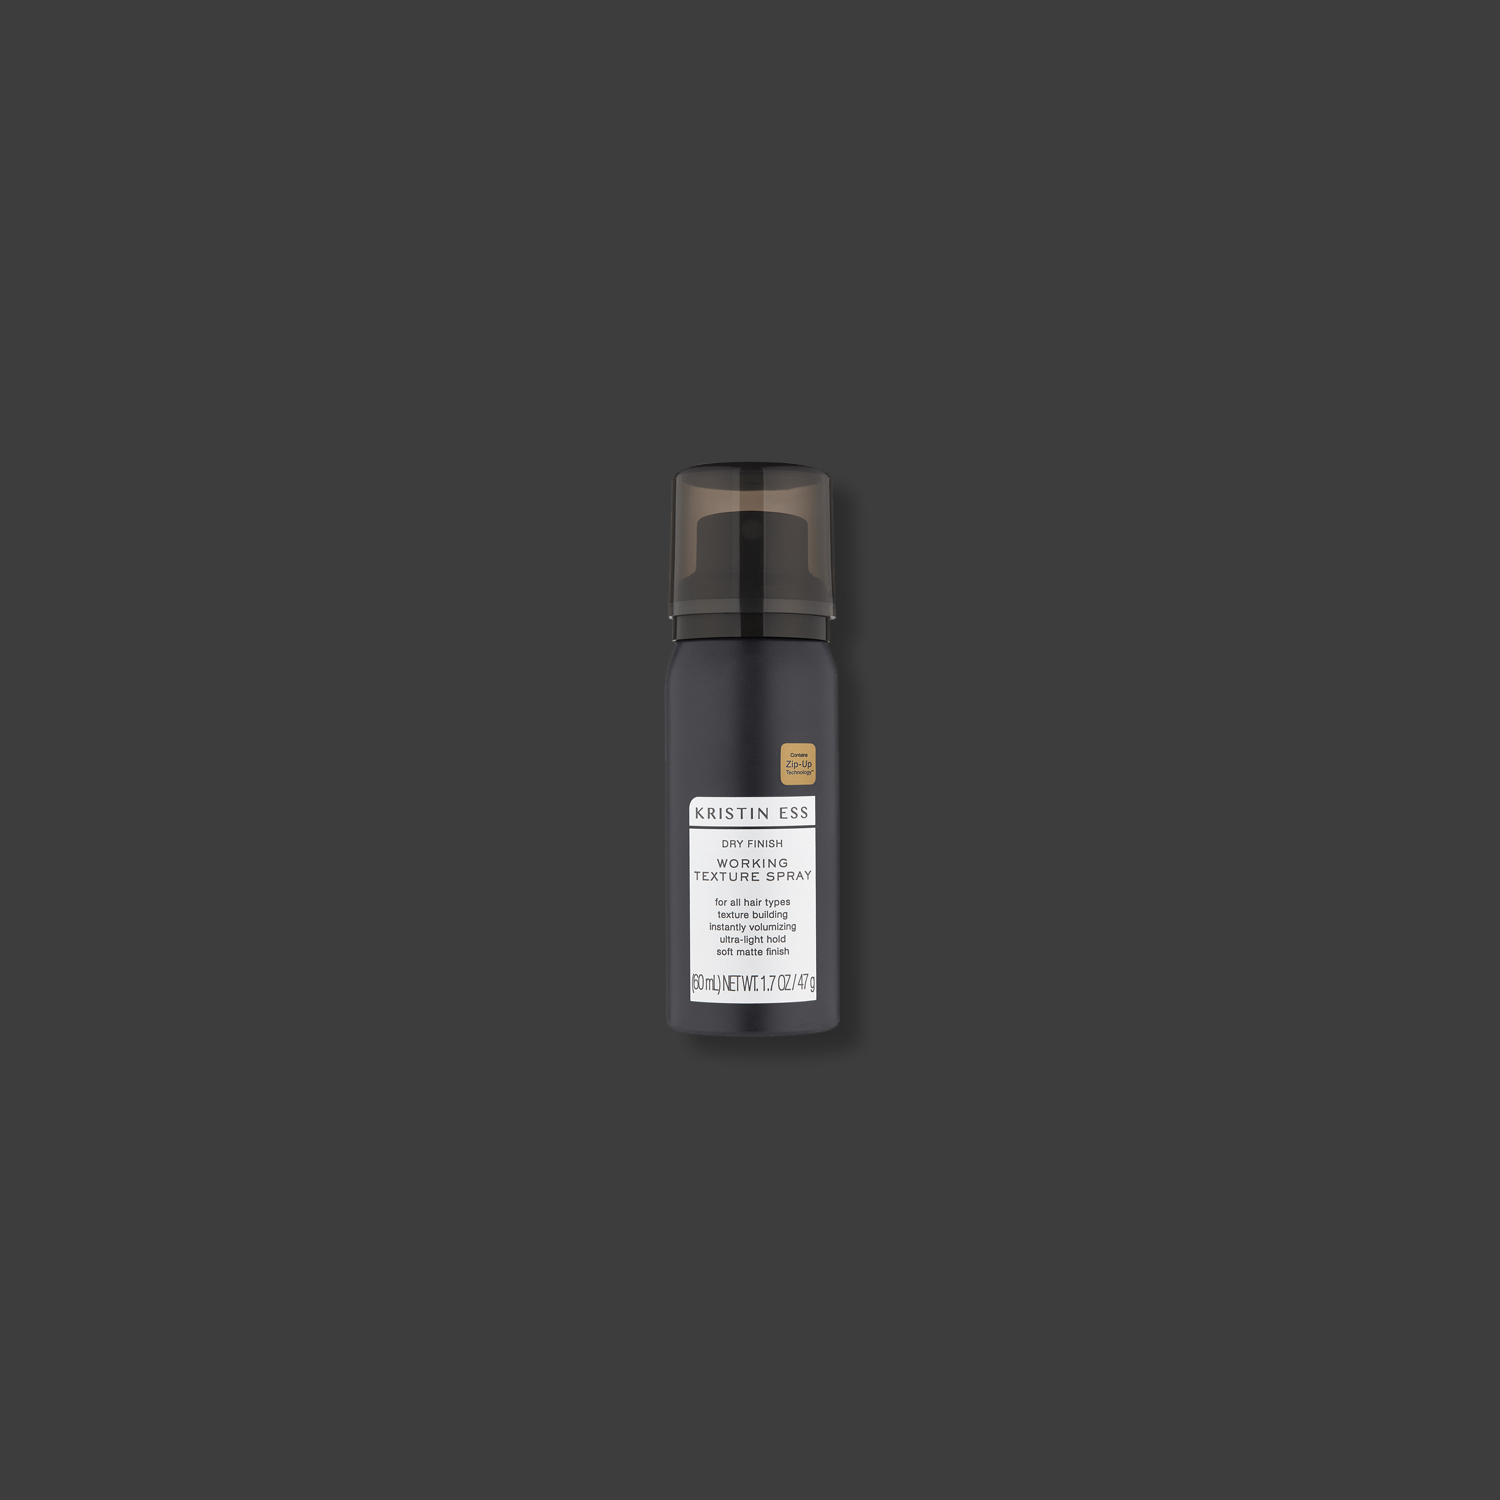 Travel Size Working Texture Spray